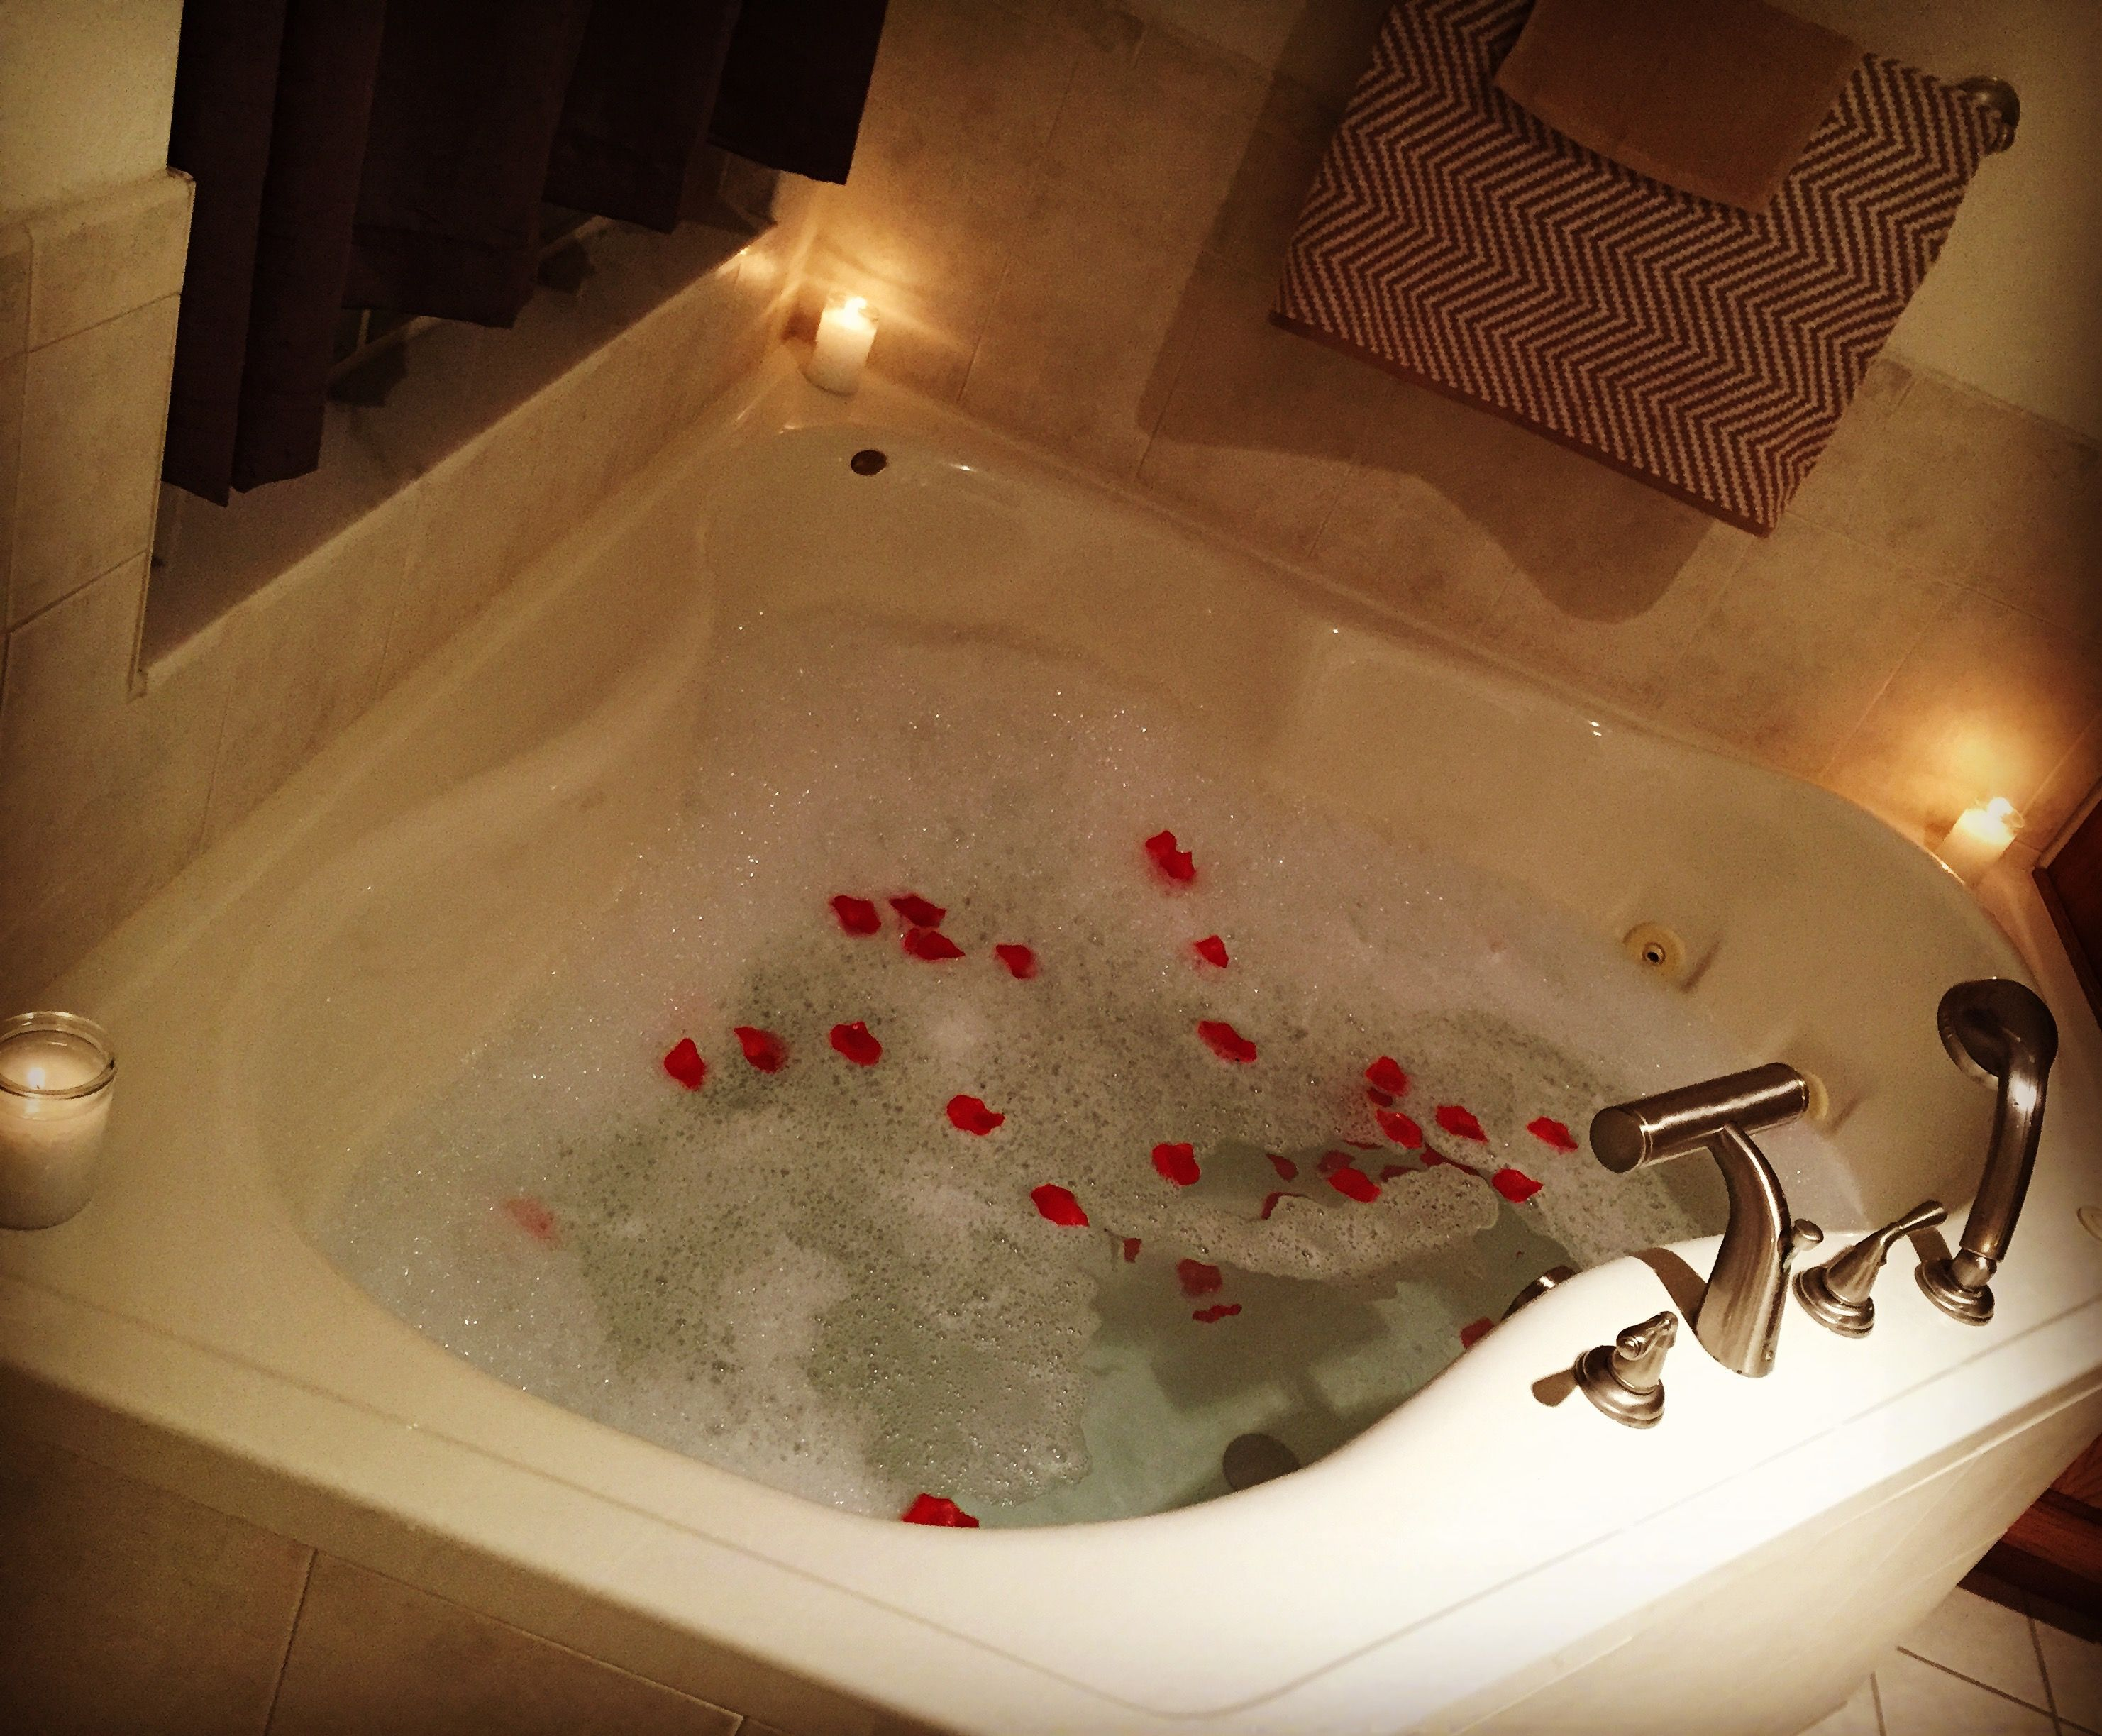 DIY Romantic Bubble Bath for Two🛁 | SUCCESSfUl PROJECtS | Pinterest ...